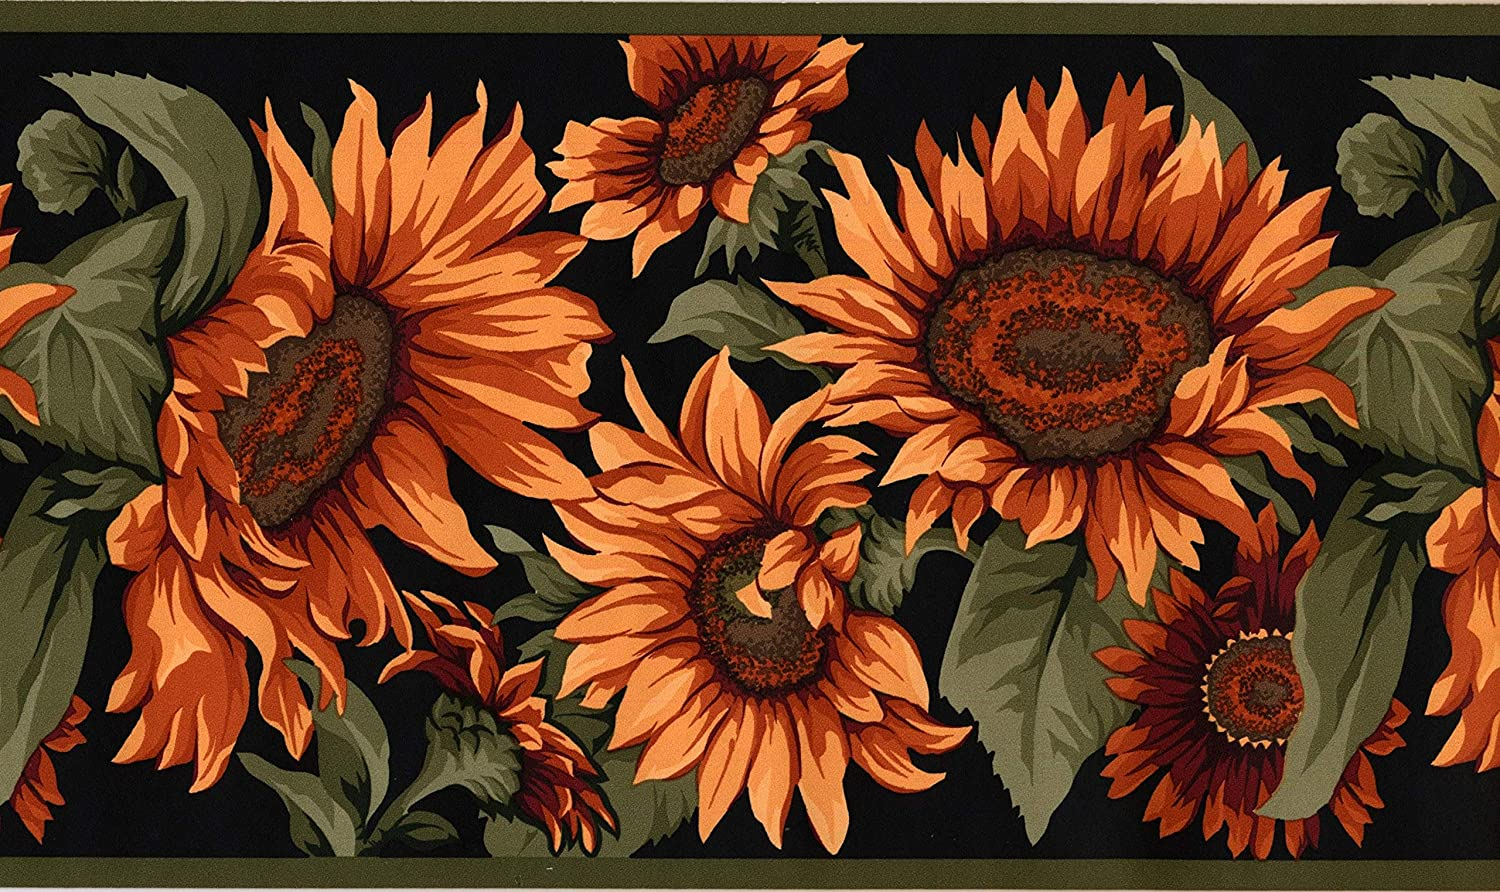 Wallpaper Border Sunflowers Green Red Black Classic 15 X 7 Md102b Amazon In Home Improvement